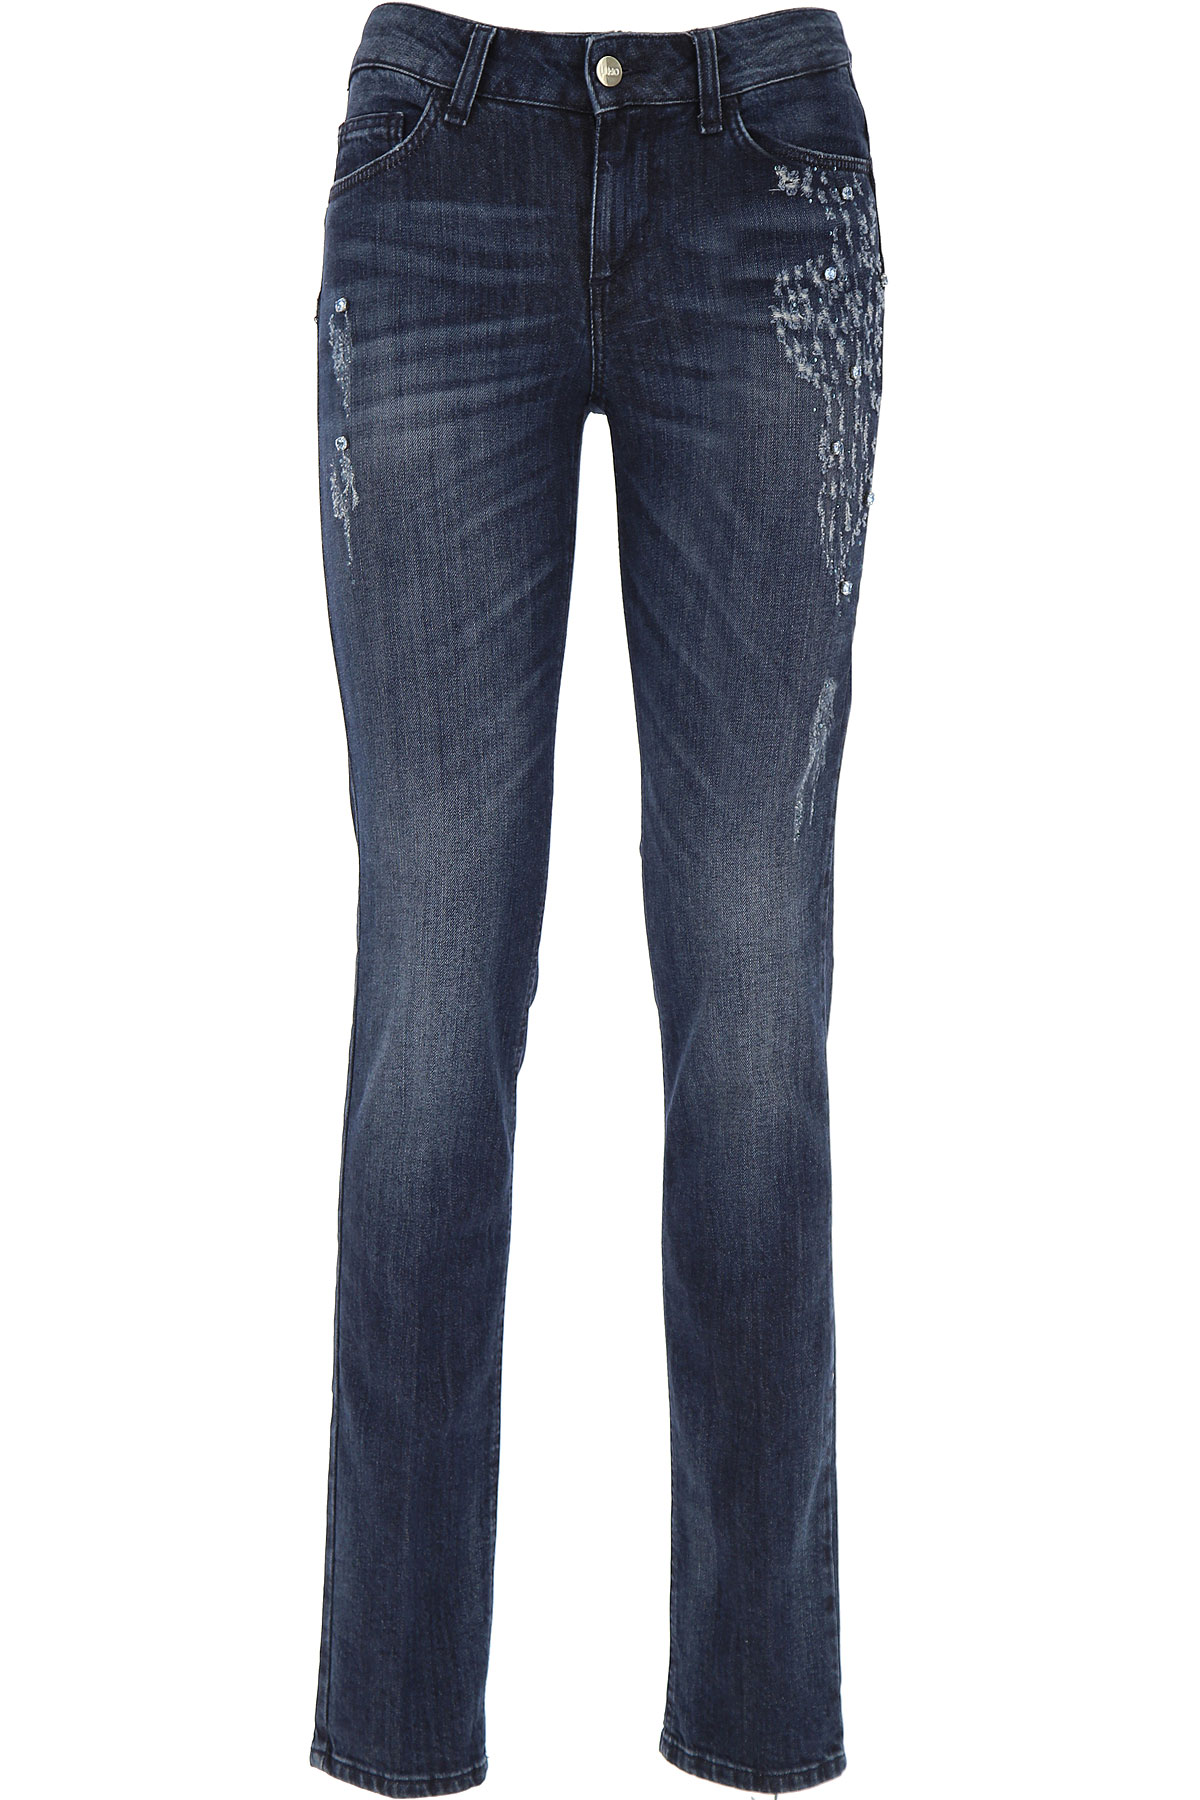 Image of Liu Jo Jeans On Sale in Outlet, Denim, Cotton, 2017, 27 28 29 30 31 32